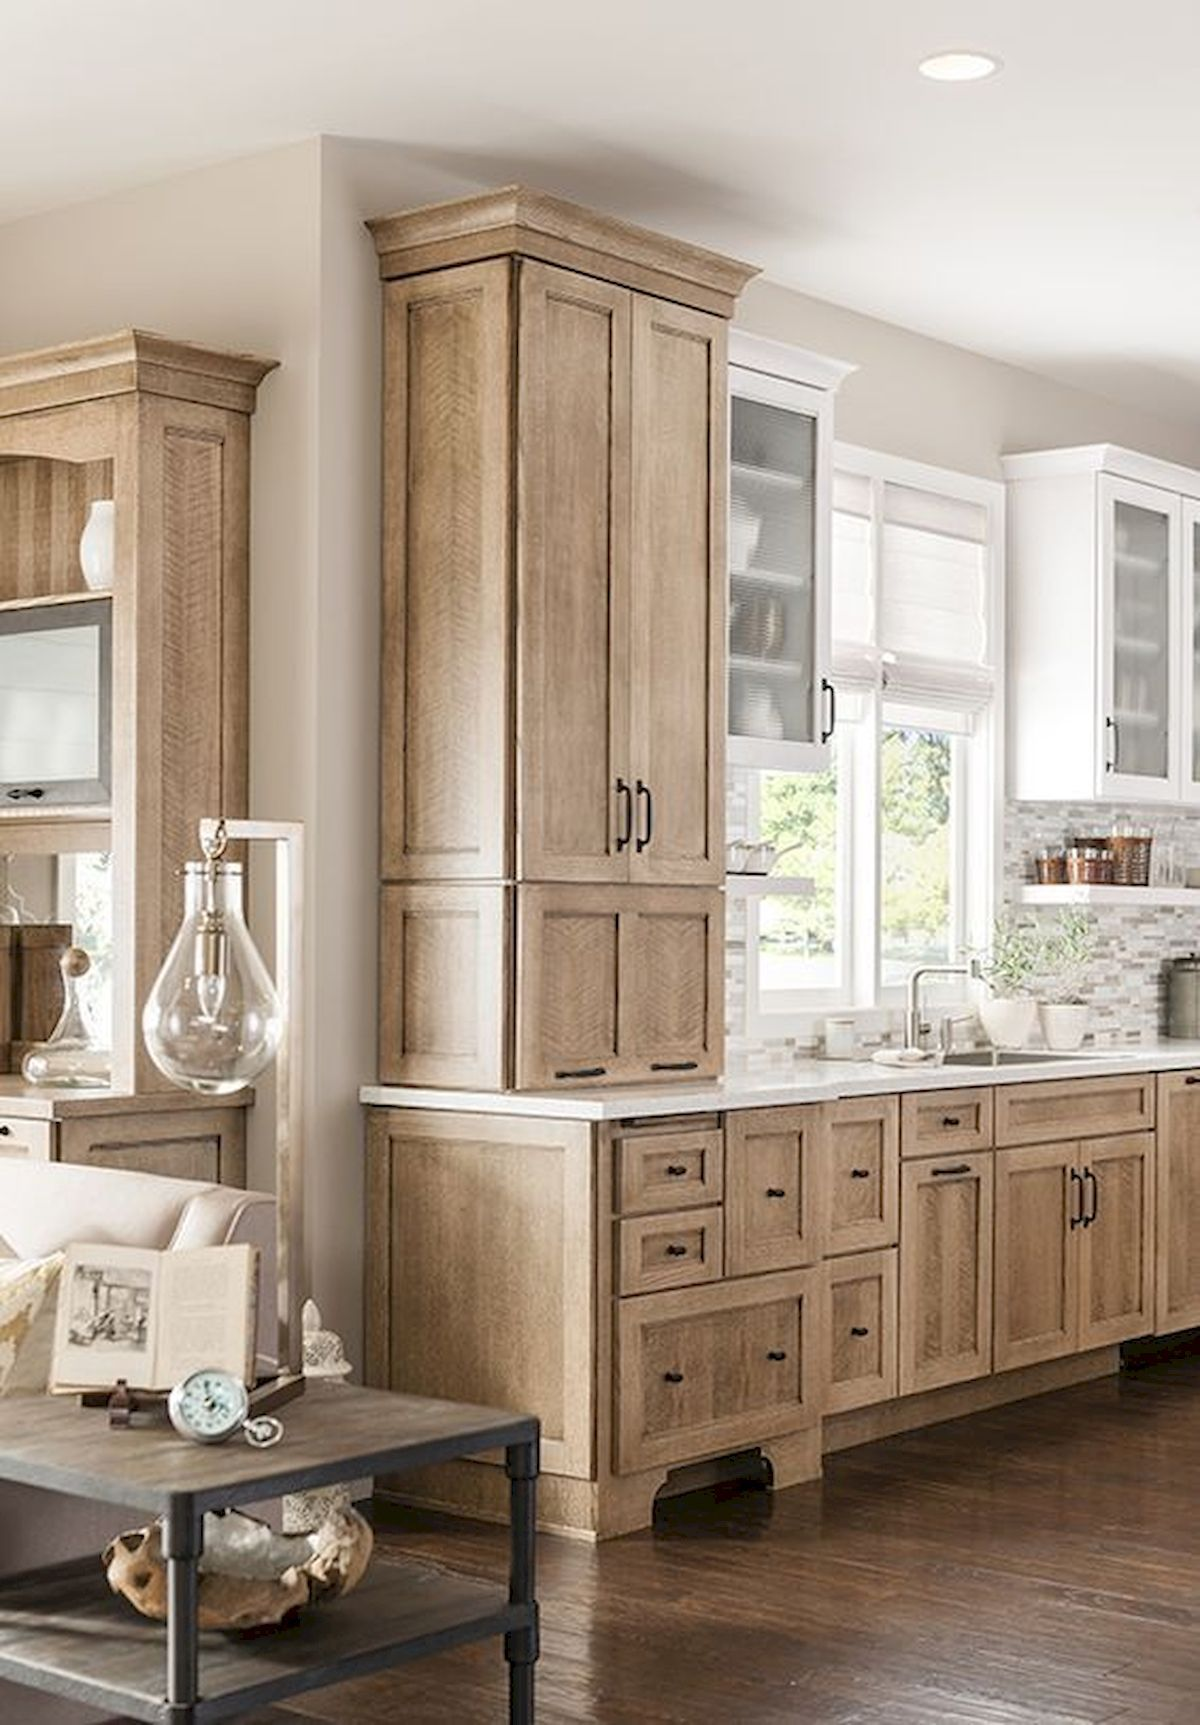 kitchen cabinets design ideas for a great looking kitchen kitchen cabinet design rustic on kitchen organization cabinet layout id=33923